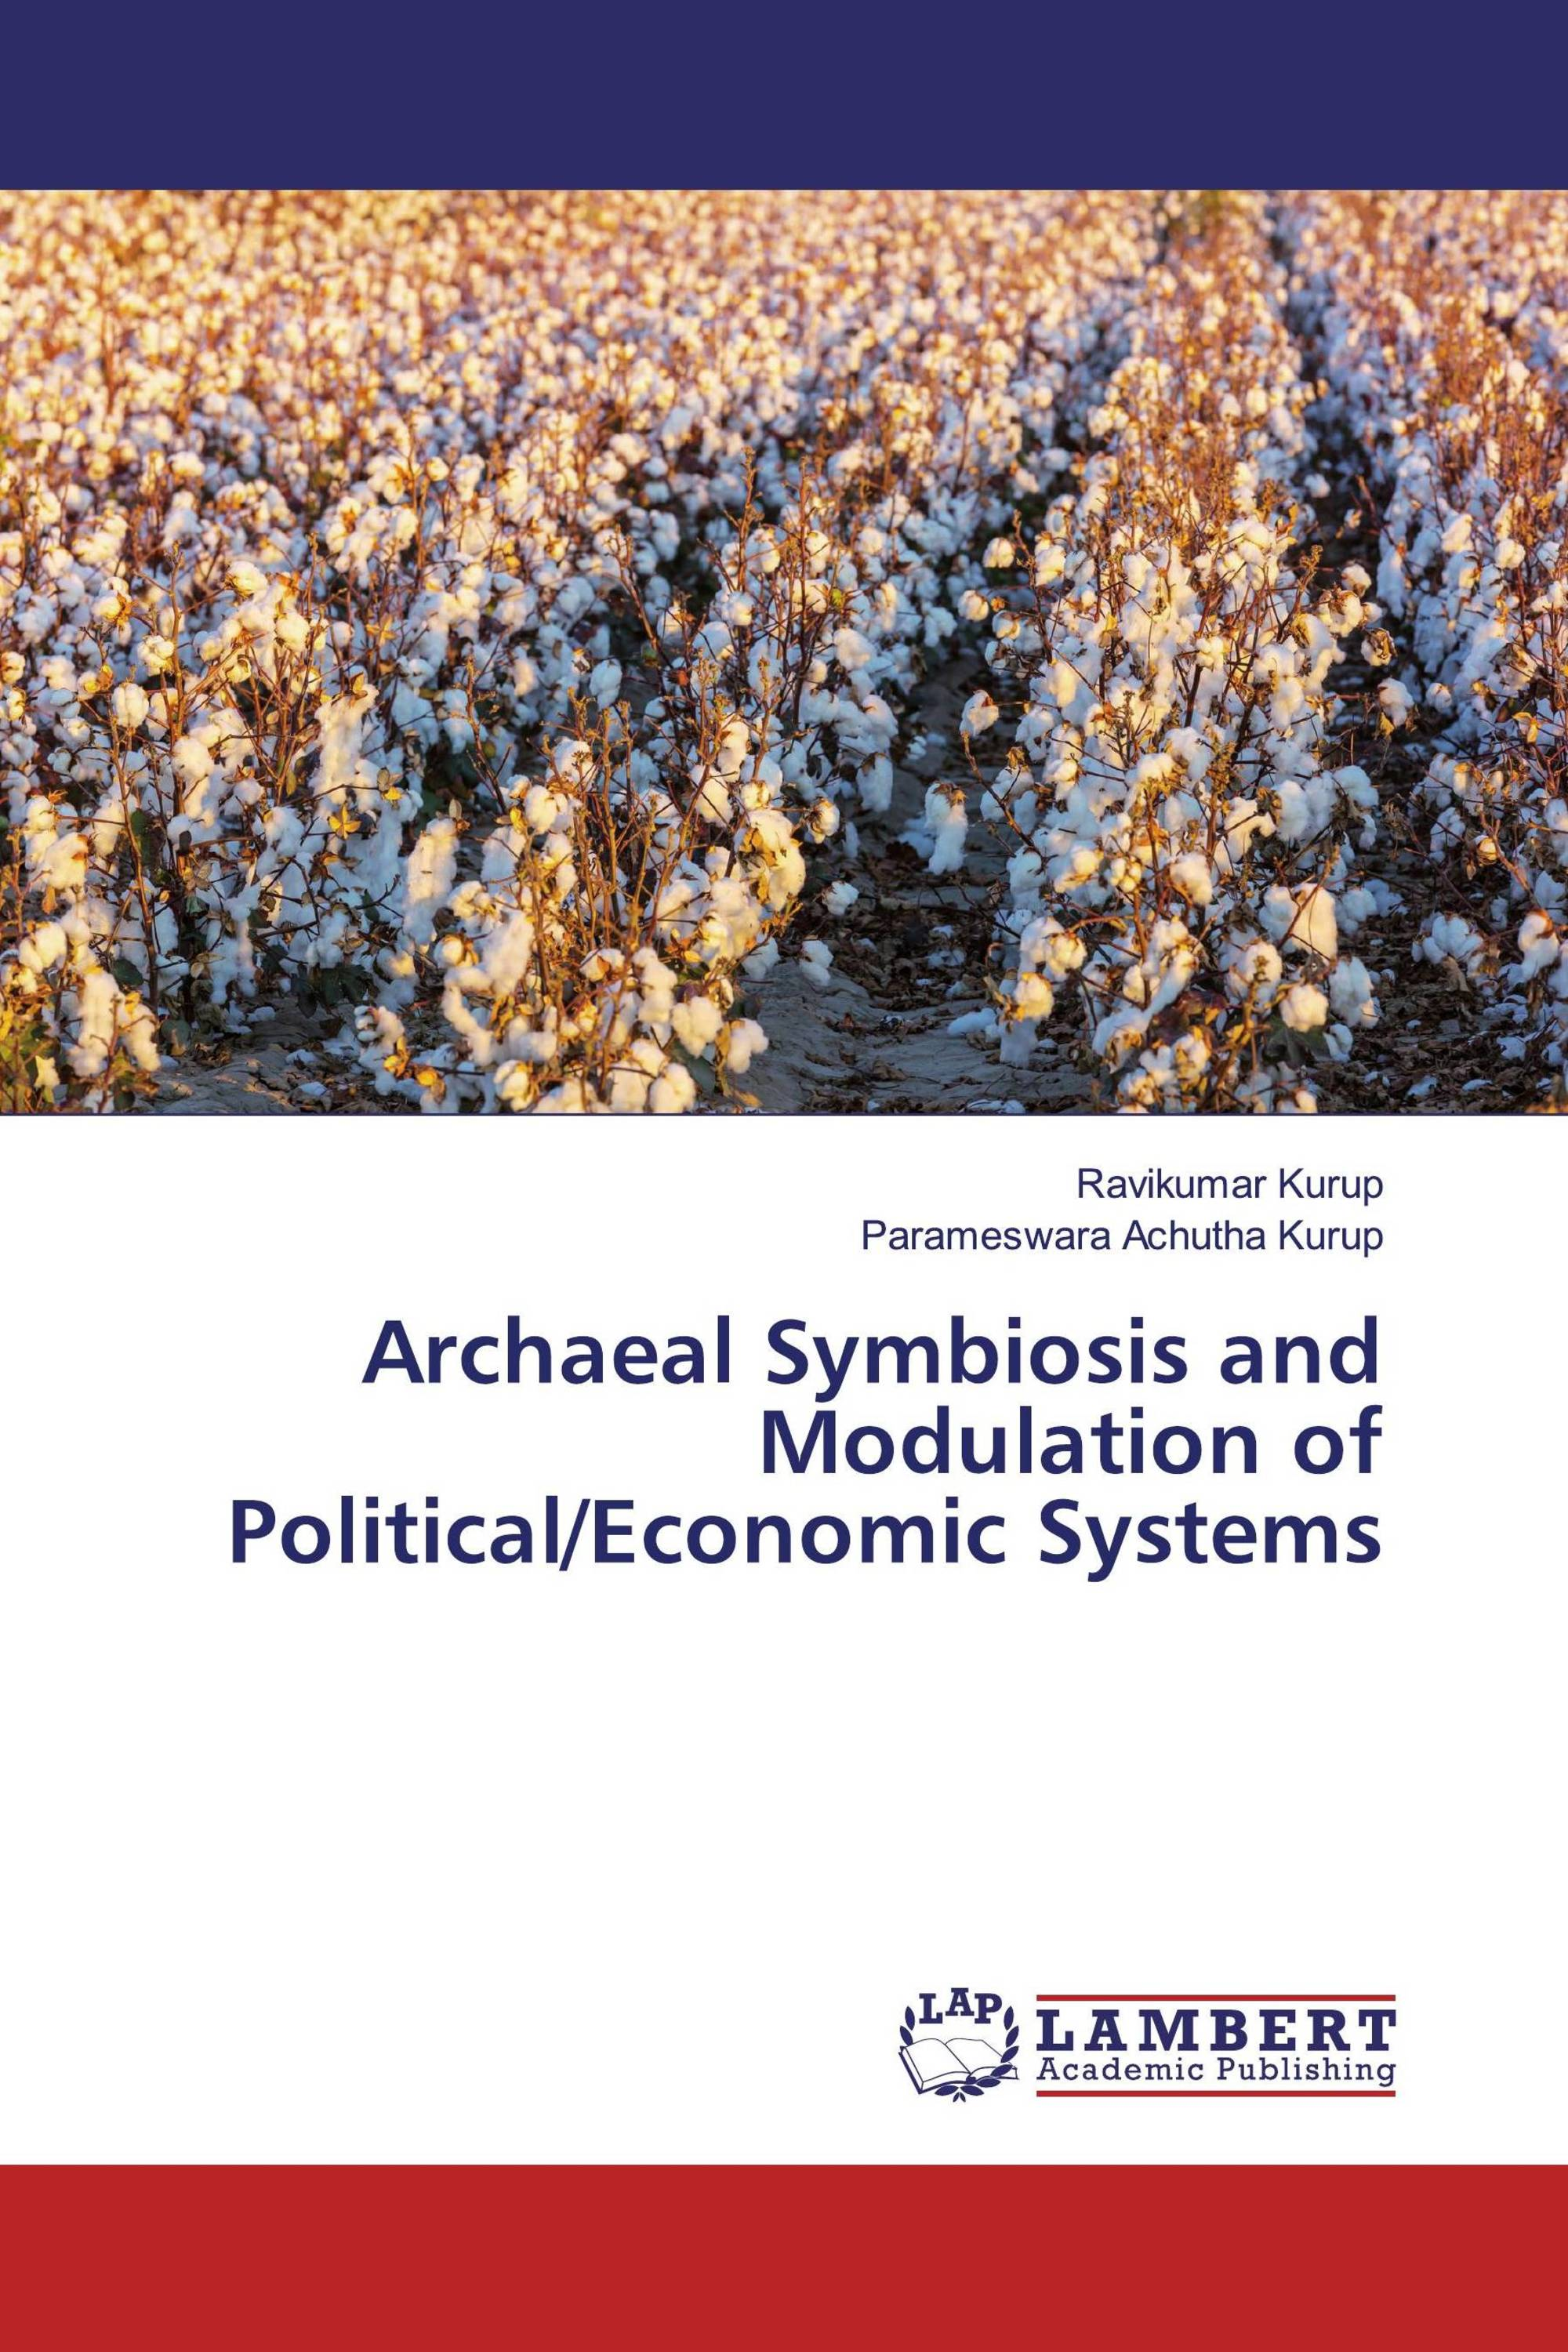 Archaeal Symbiosis and Modulation of Political/Economic Systems